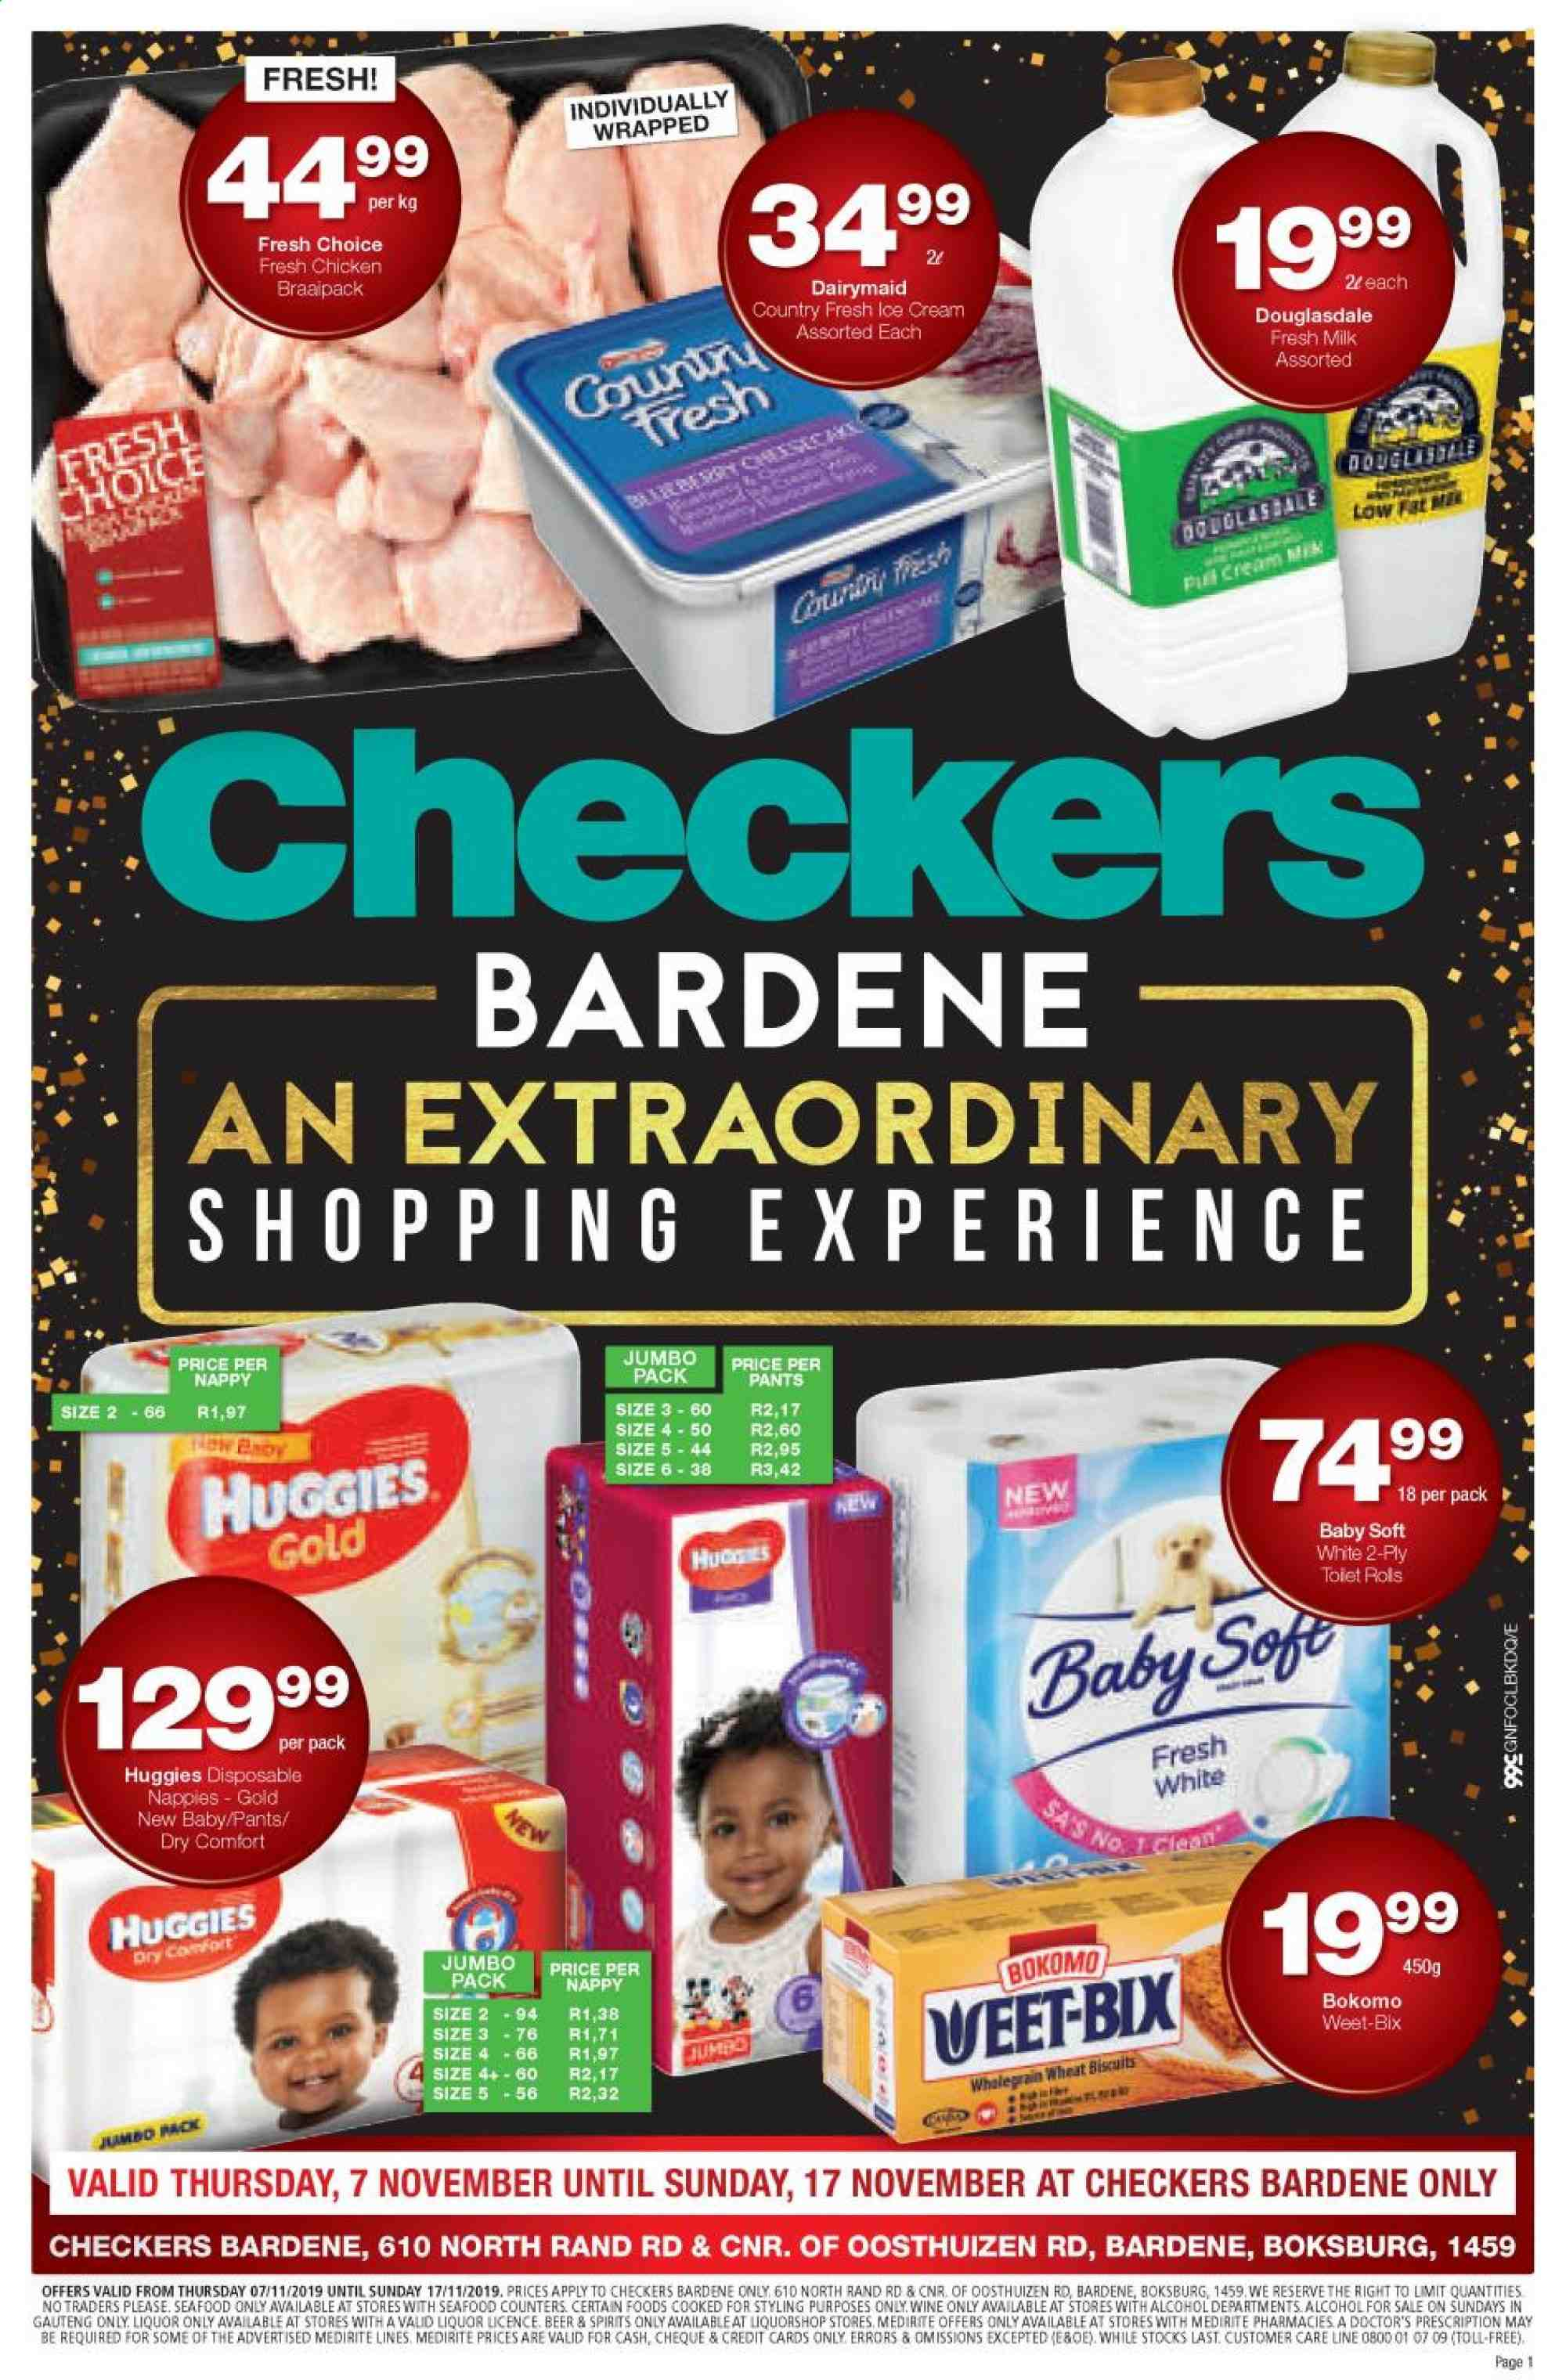 Checkers special - 11.07.2019 - 11.17.2019 - Sales products - beer, biscuits, cream, milk, huggies, chicken, pants, seafood, wine, liquor, weet-bix, nappies, diapers. Page 1.